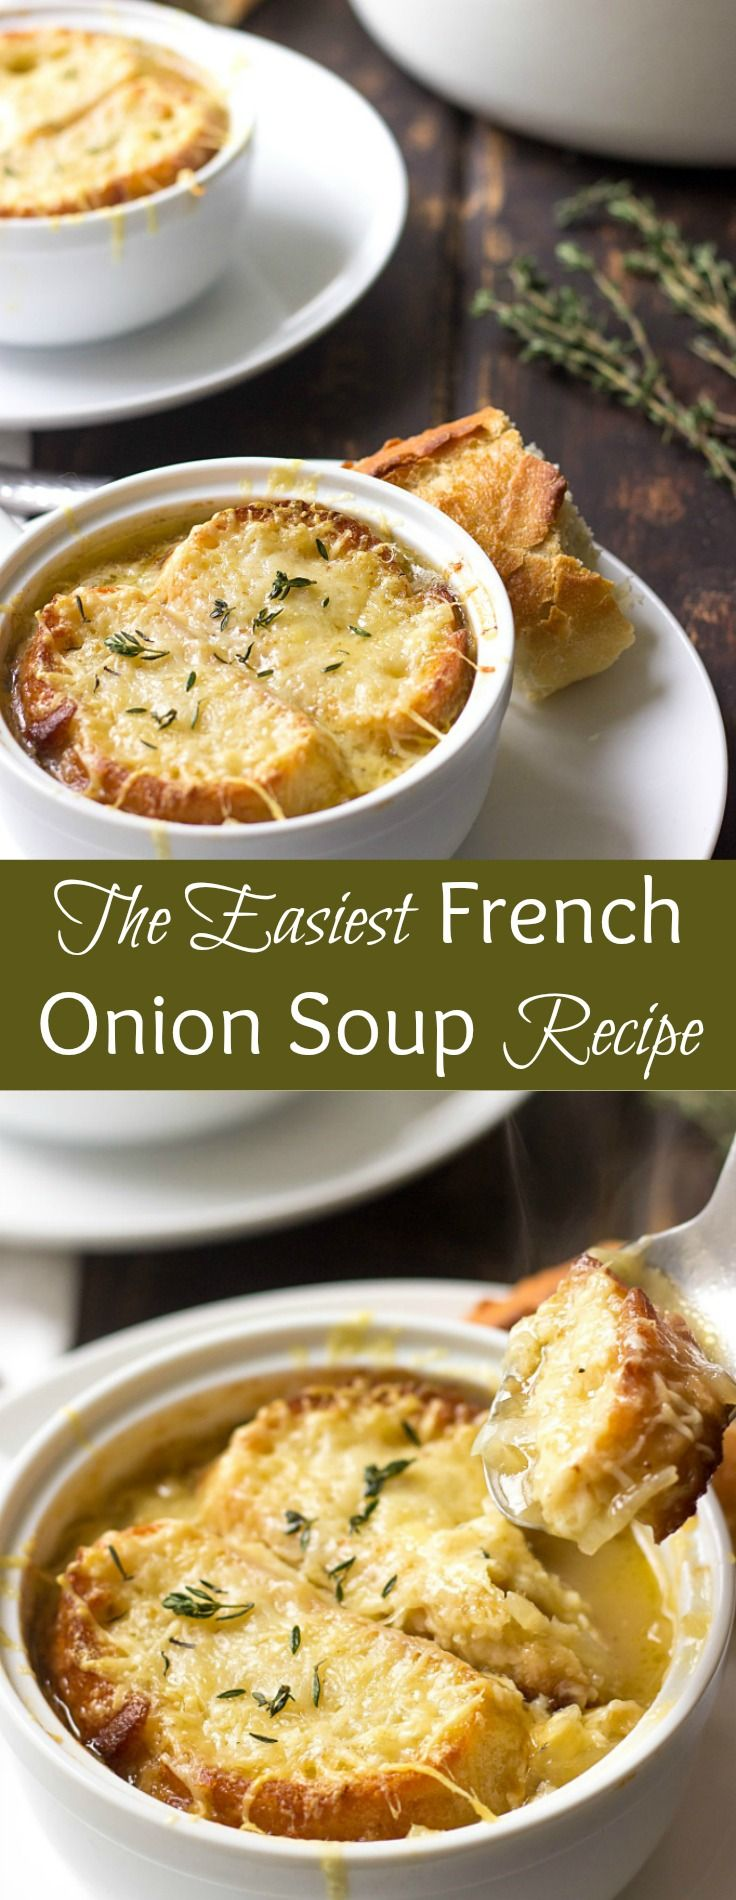 My take on the Easy French Onion Soup will make you believe that sophisticated cuisine doesn